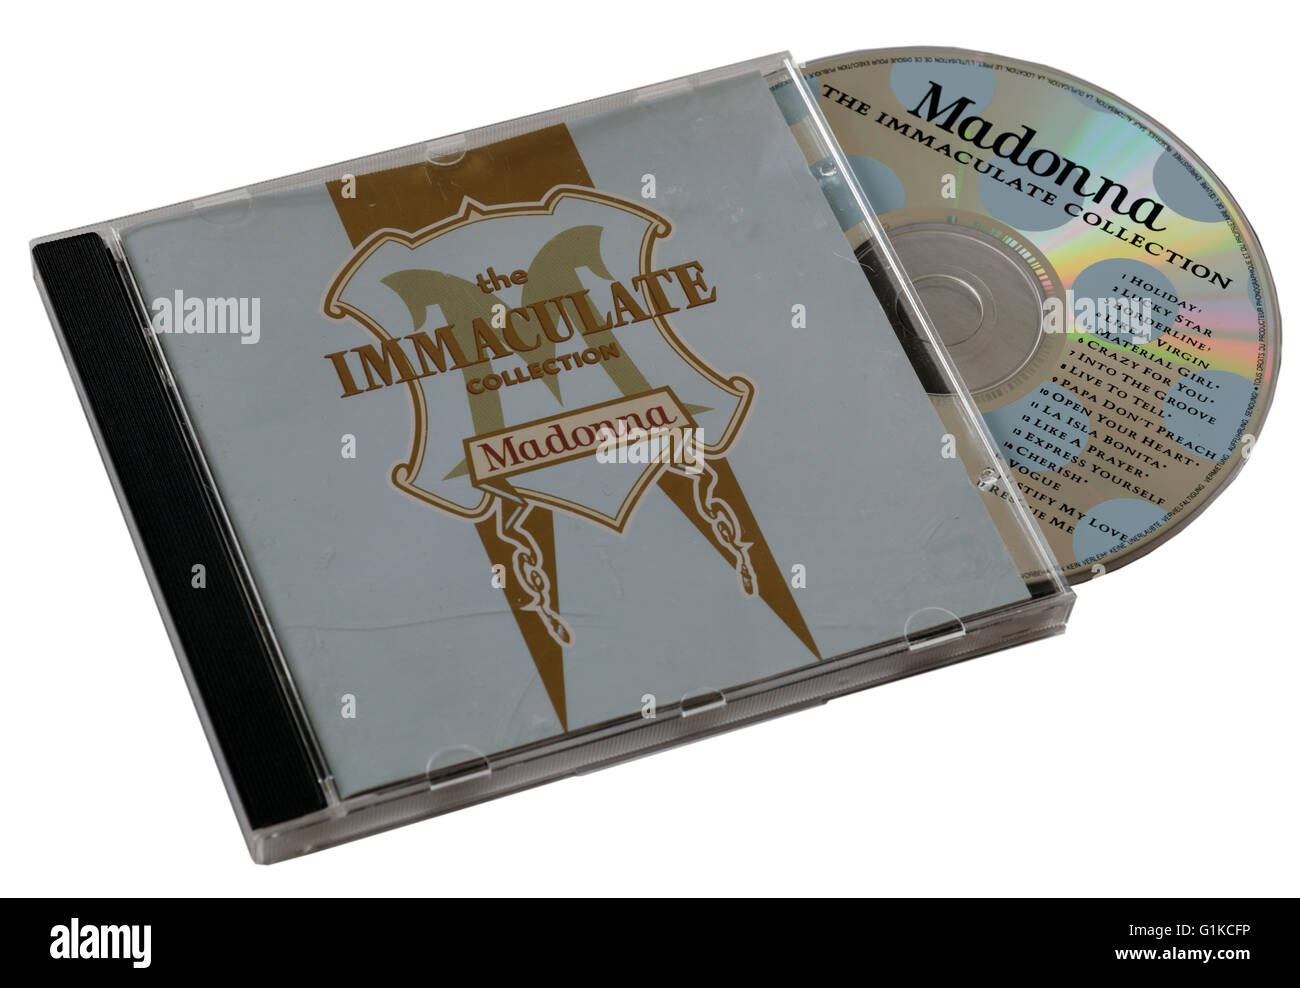 Madonna The Immaculate Collection CD - Stock Image